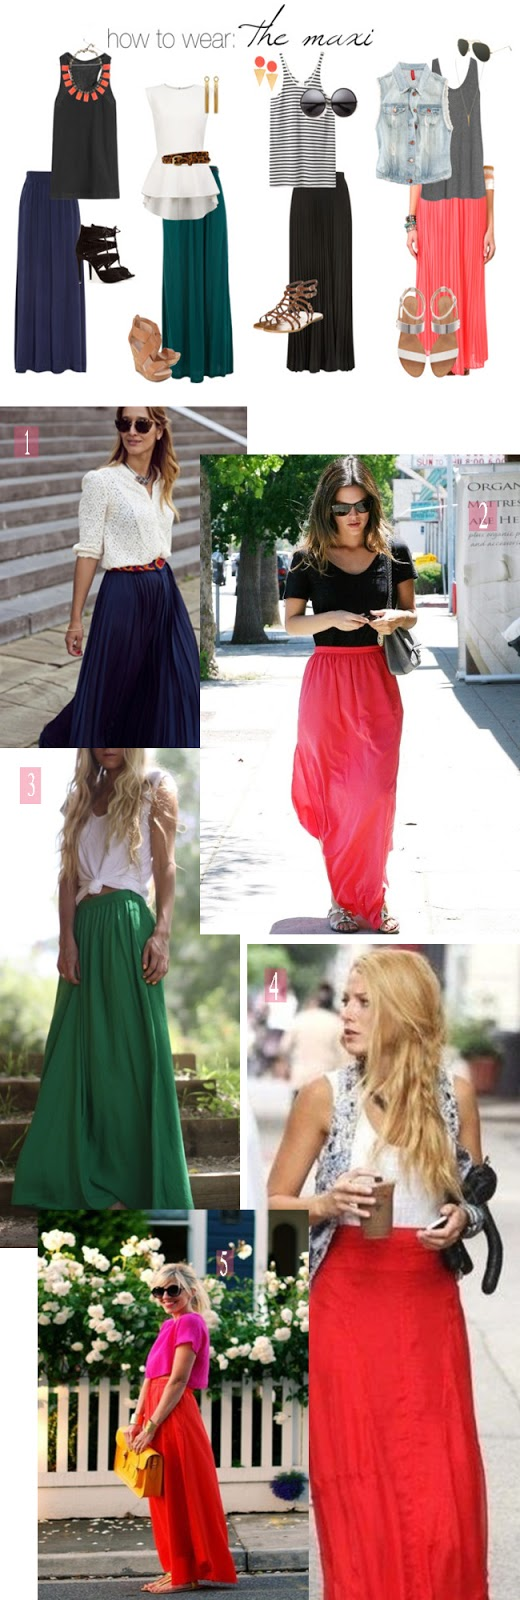 a creative day how to wear the maxi skirt for summer